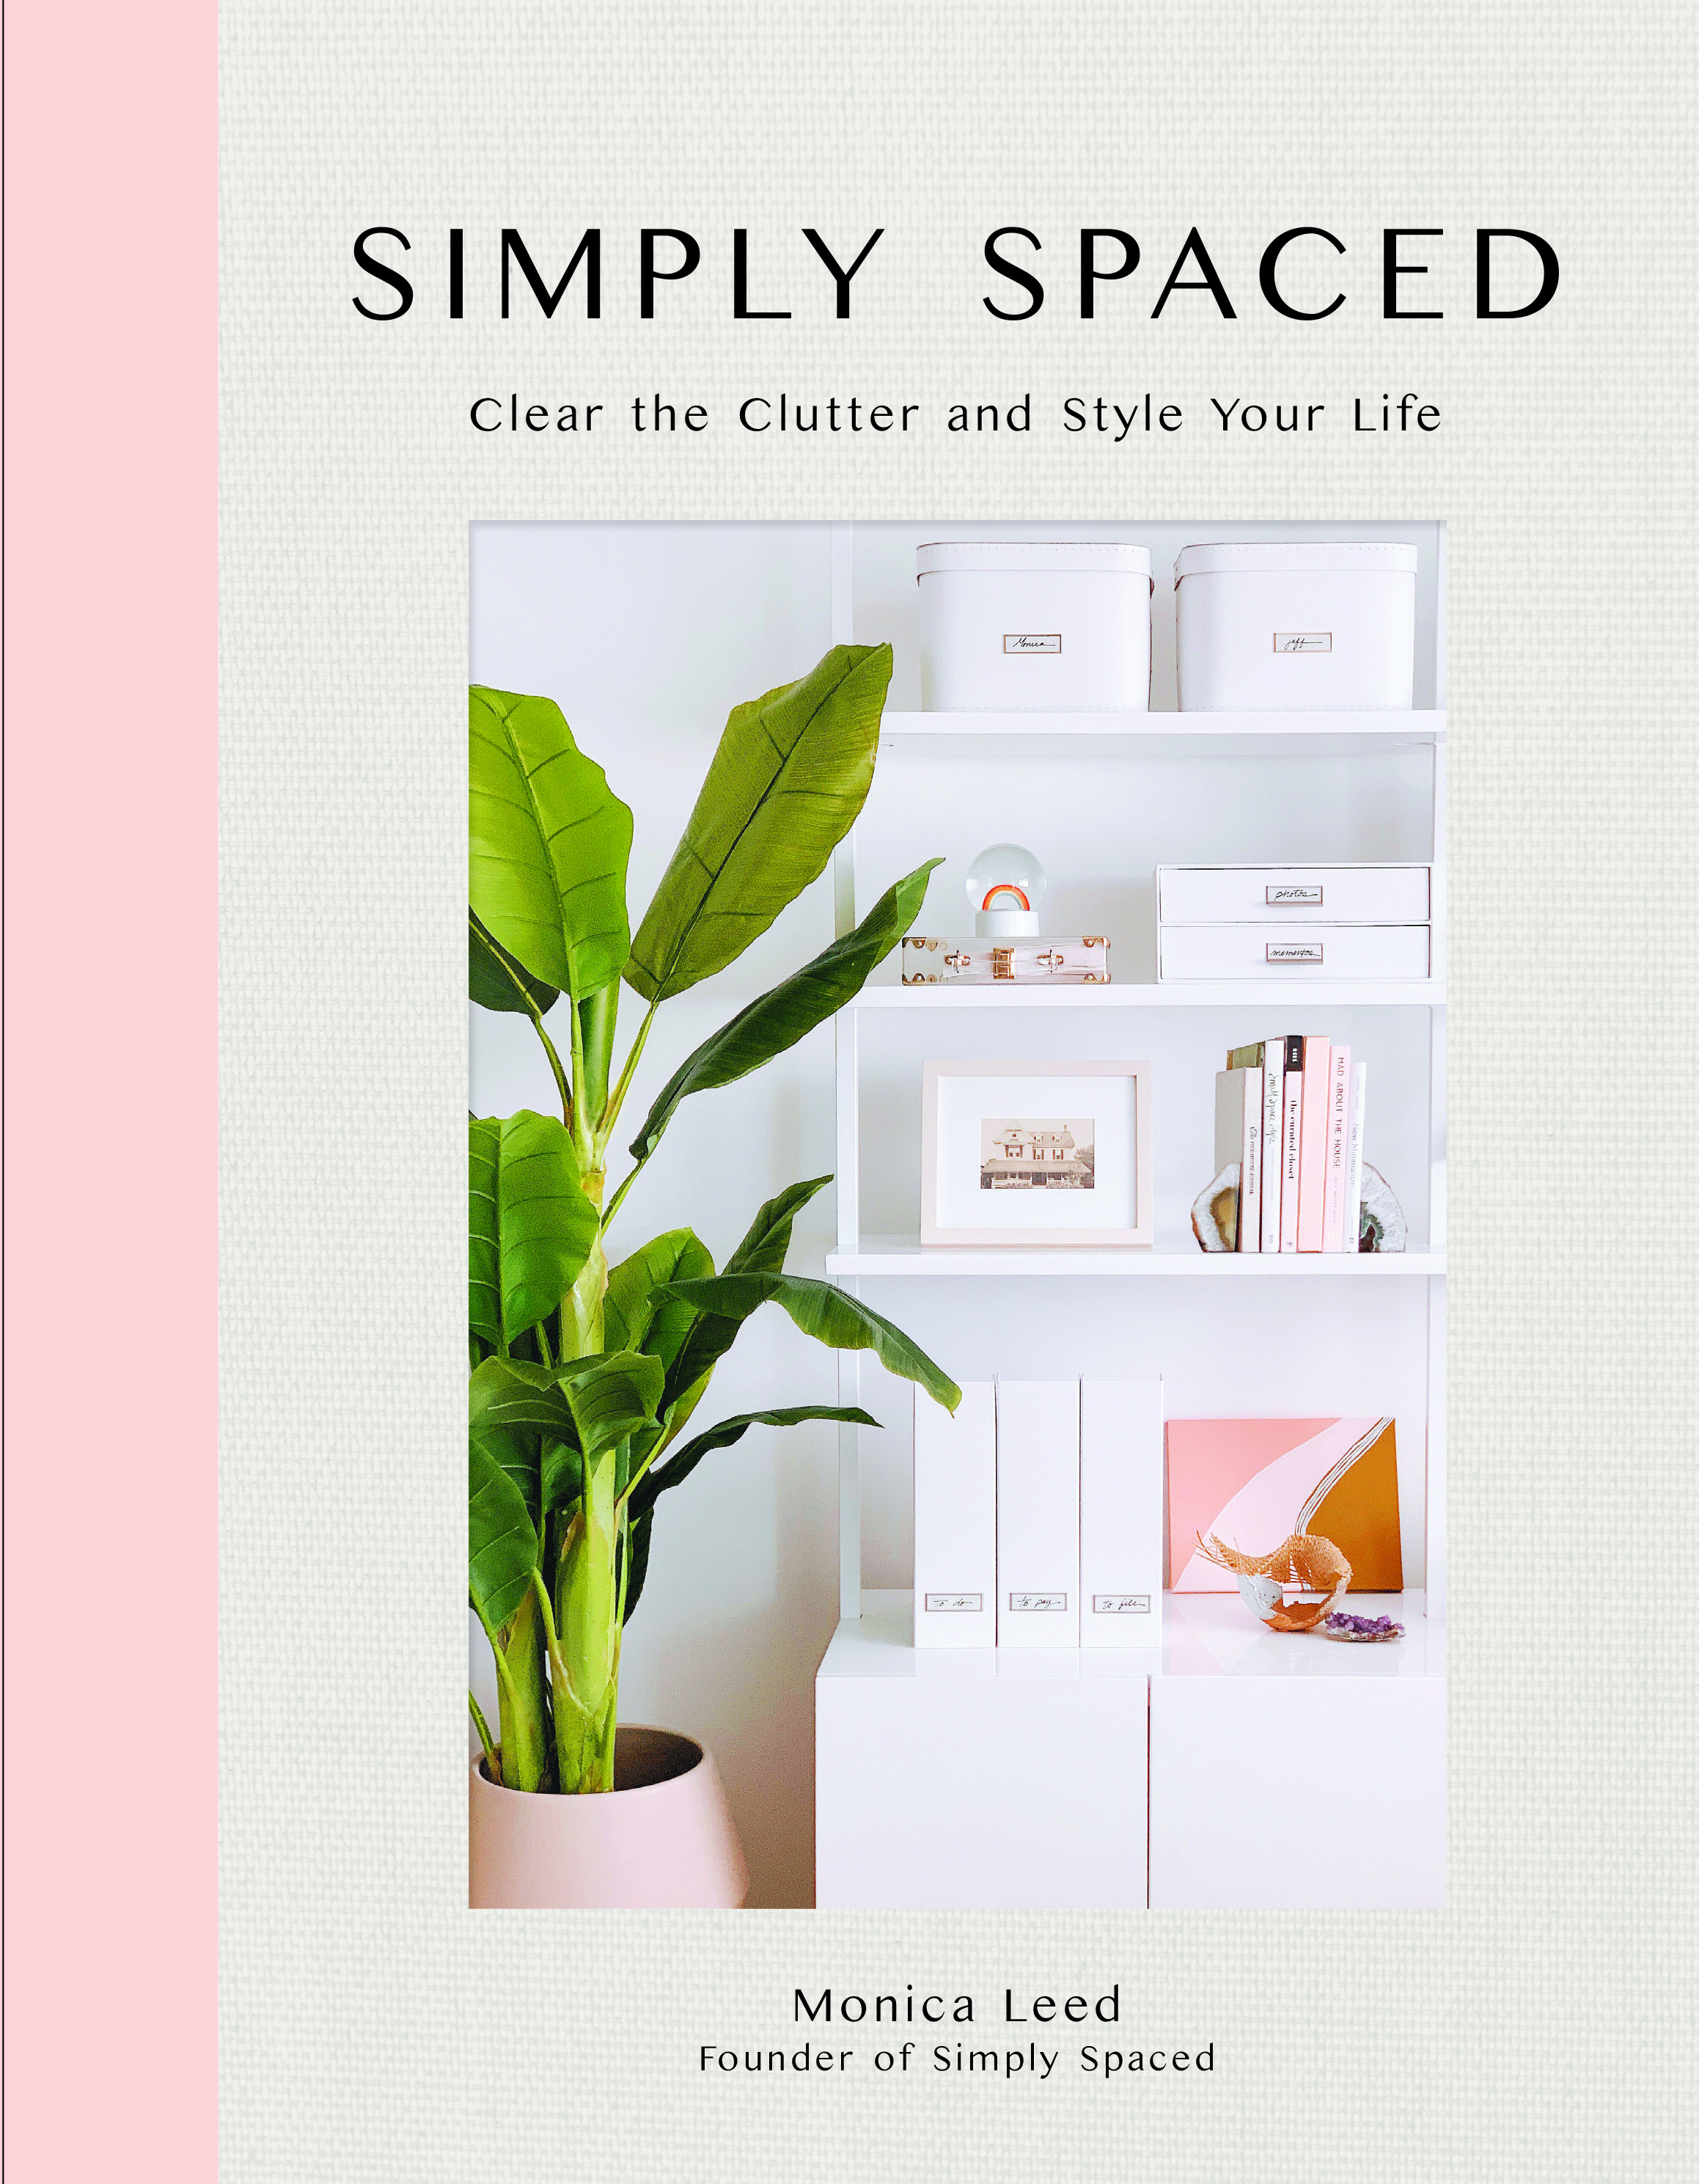 Simply Spaced by Monica Leed